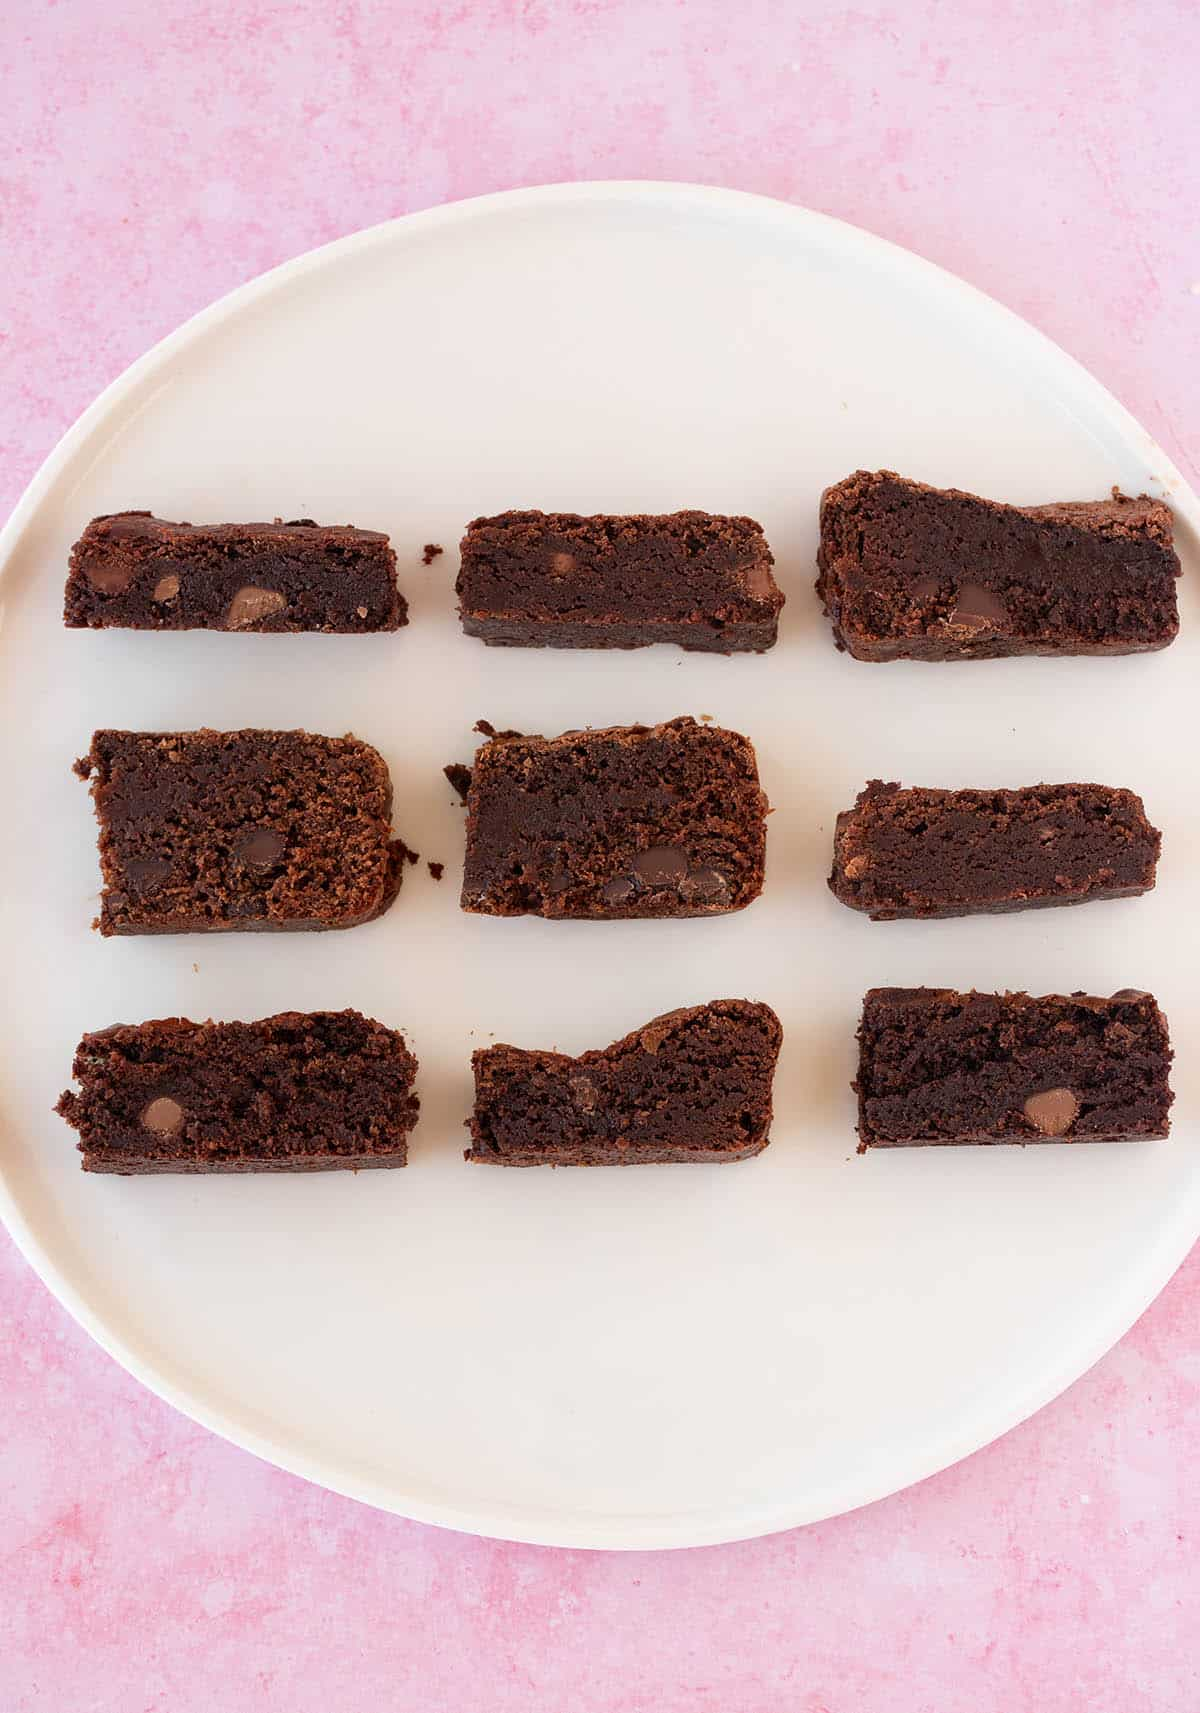 9 different brownies on a pink background.